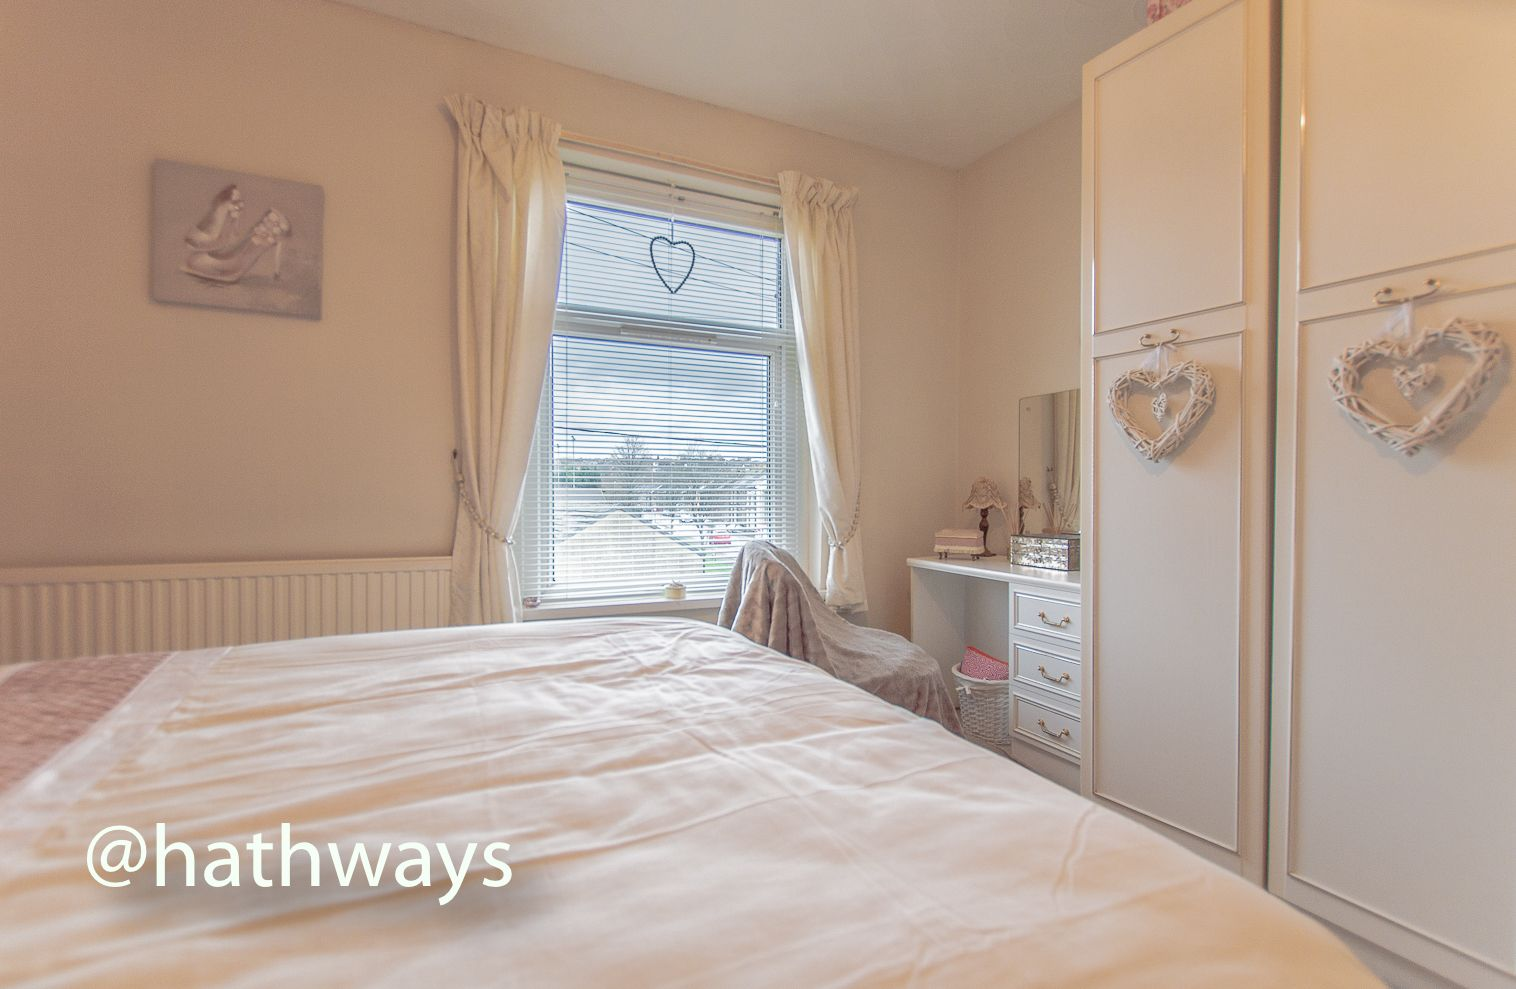 2 bed house for sale in Golynos Place Albert Road 26